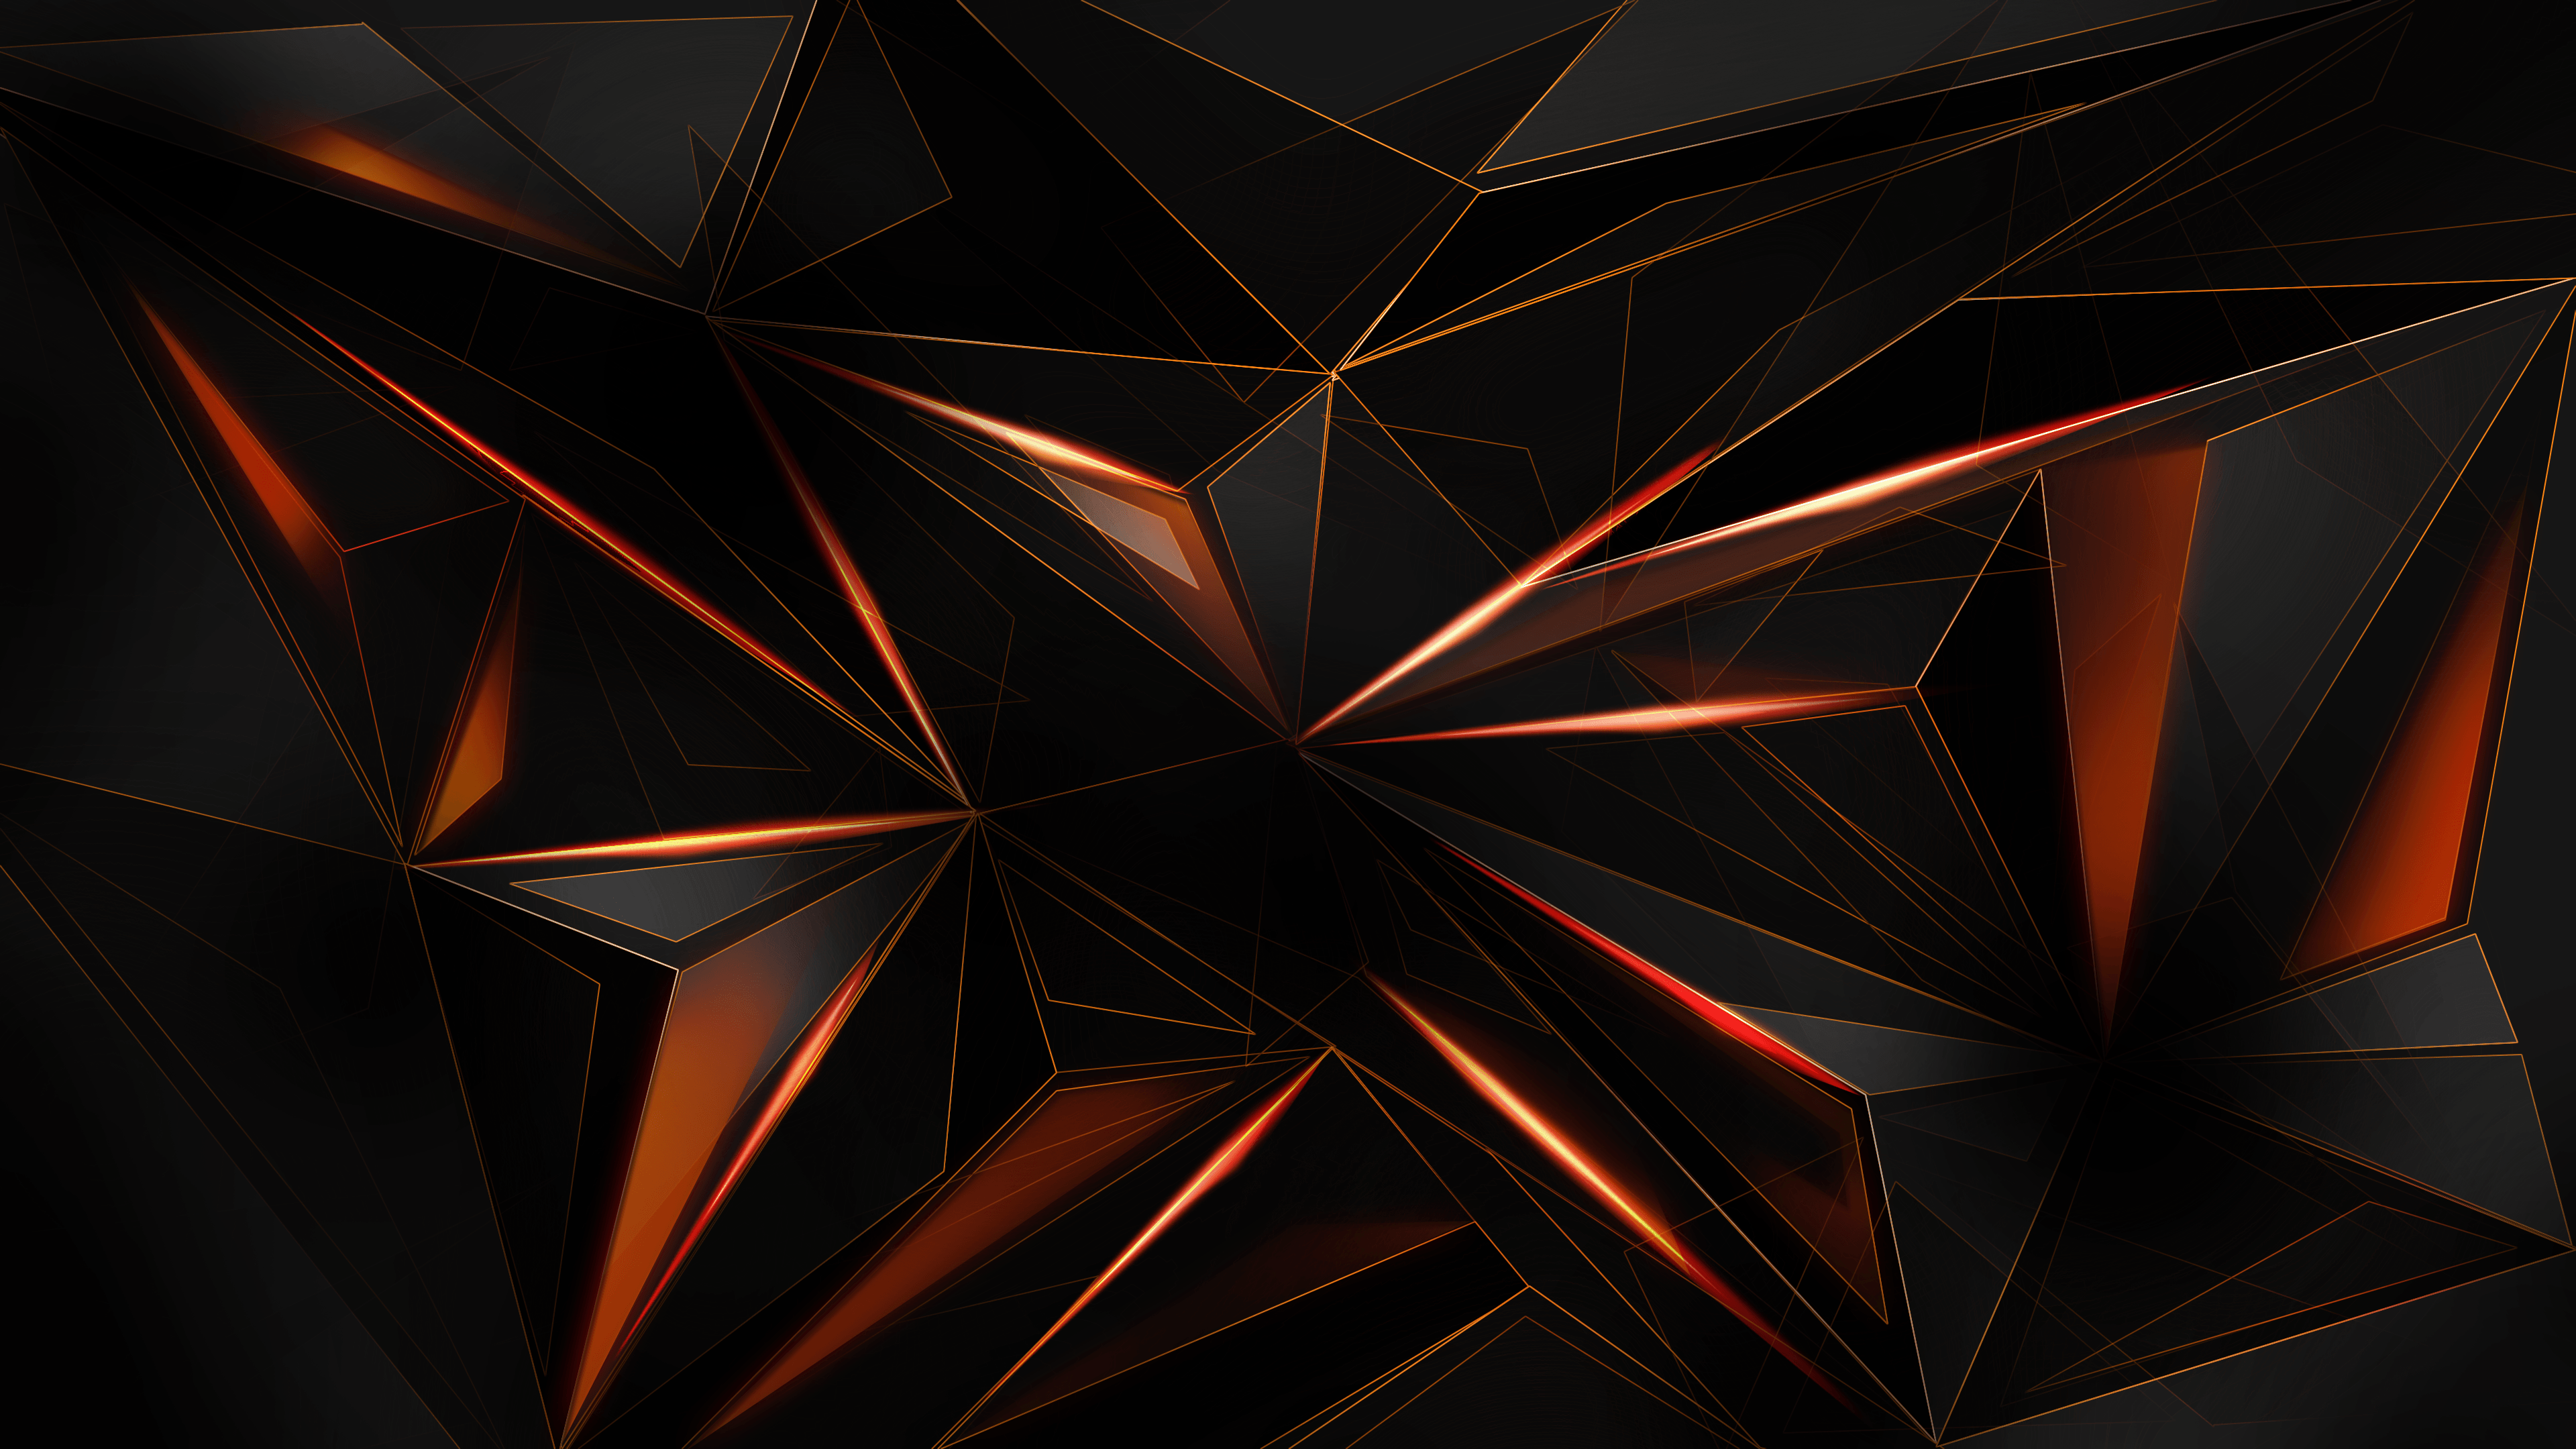 3840x2160 Abstract Wallpaper 4k (50+ images) on Genchi.info